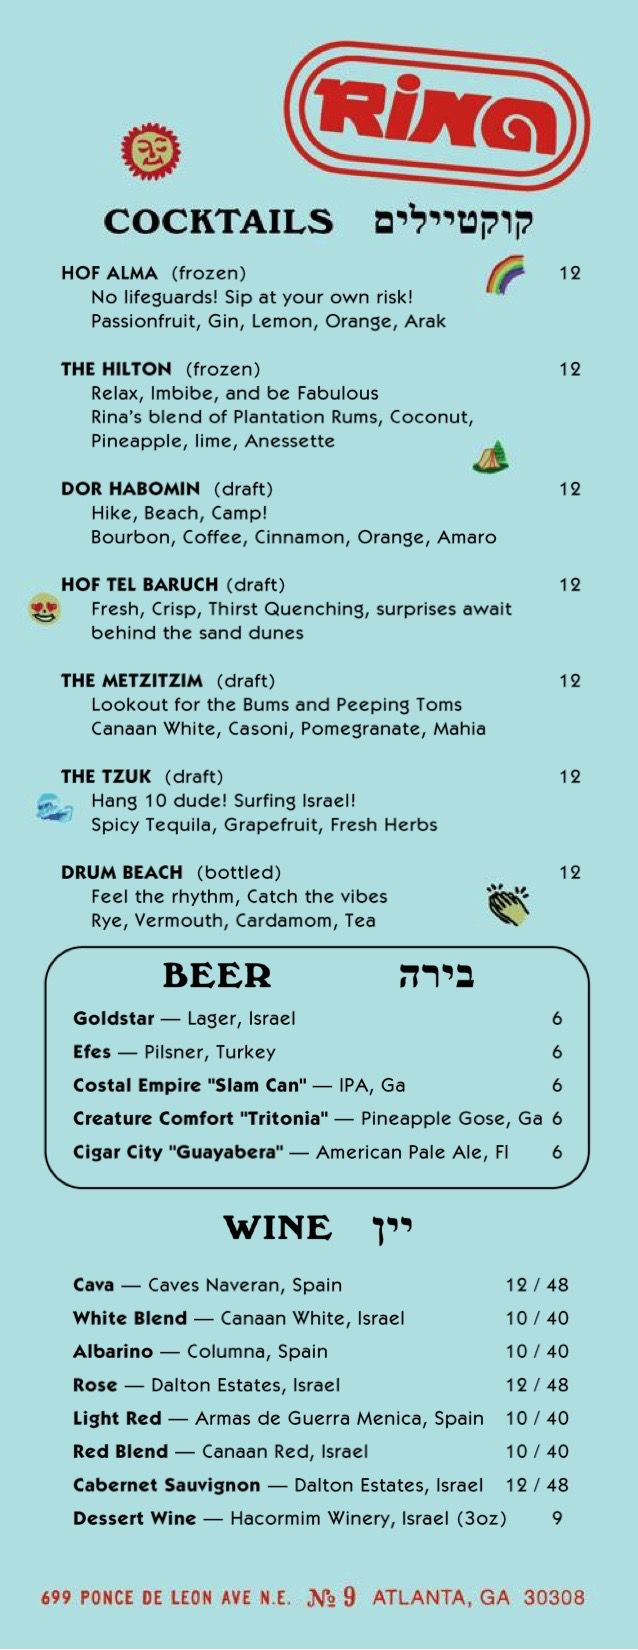 The cocktail, beer, and wine menu for Rina